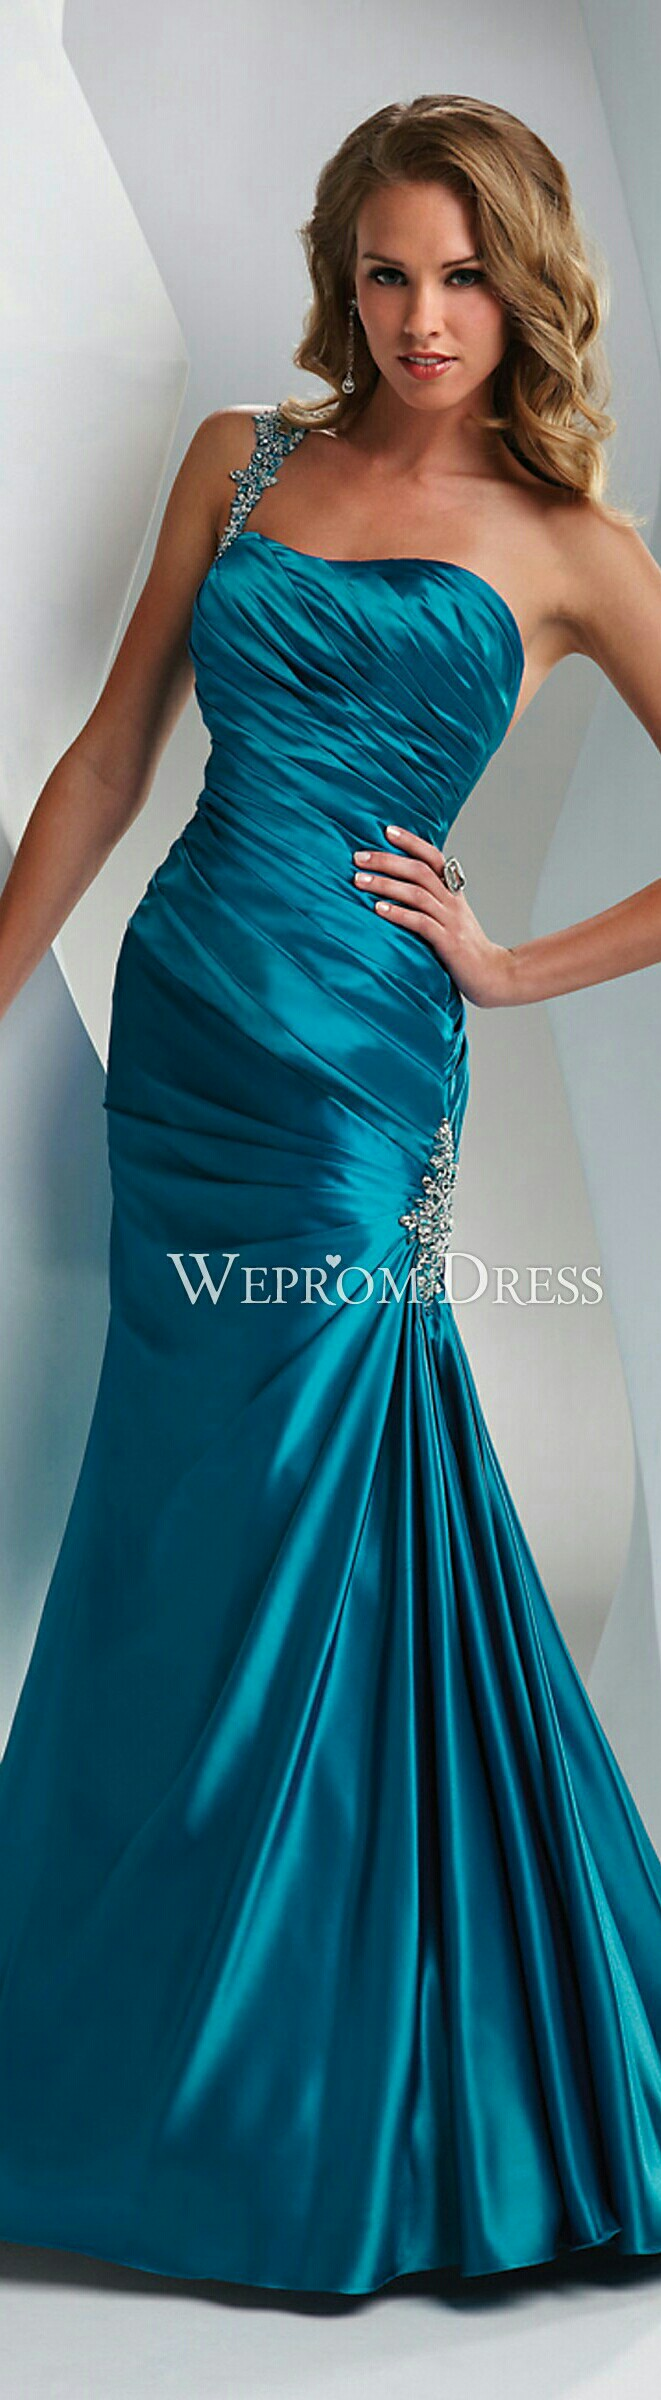 Luxury Prom Dress For Pear Shaped Collection - All Wedding Dresses ...